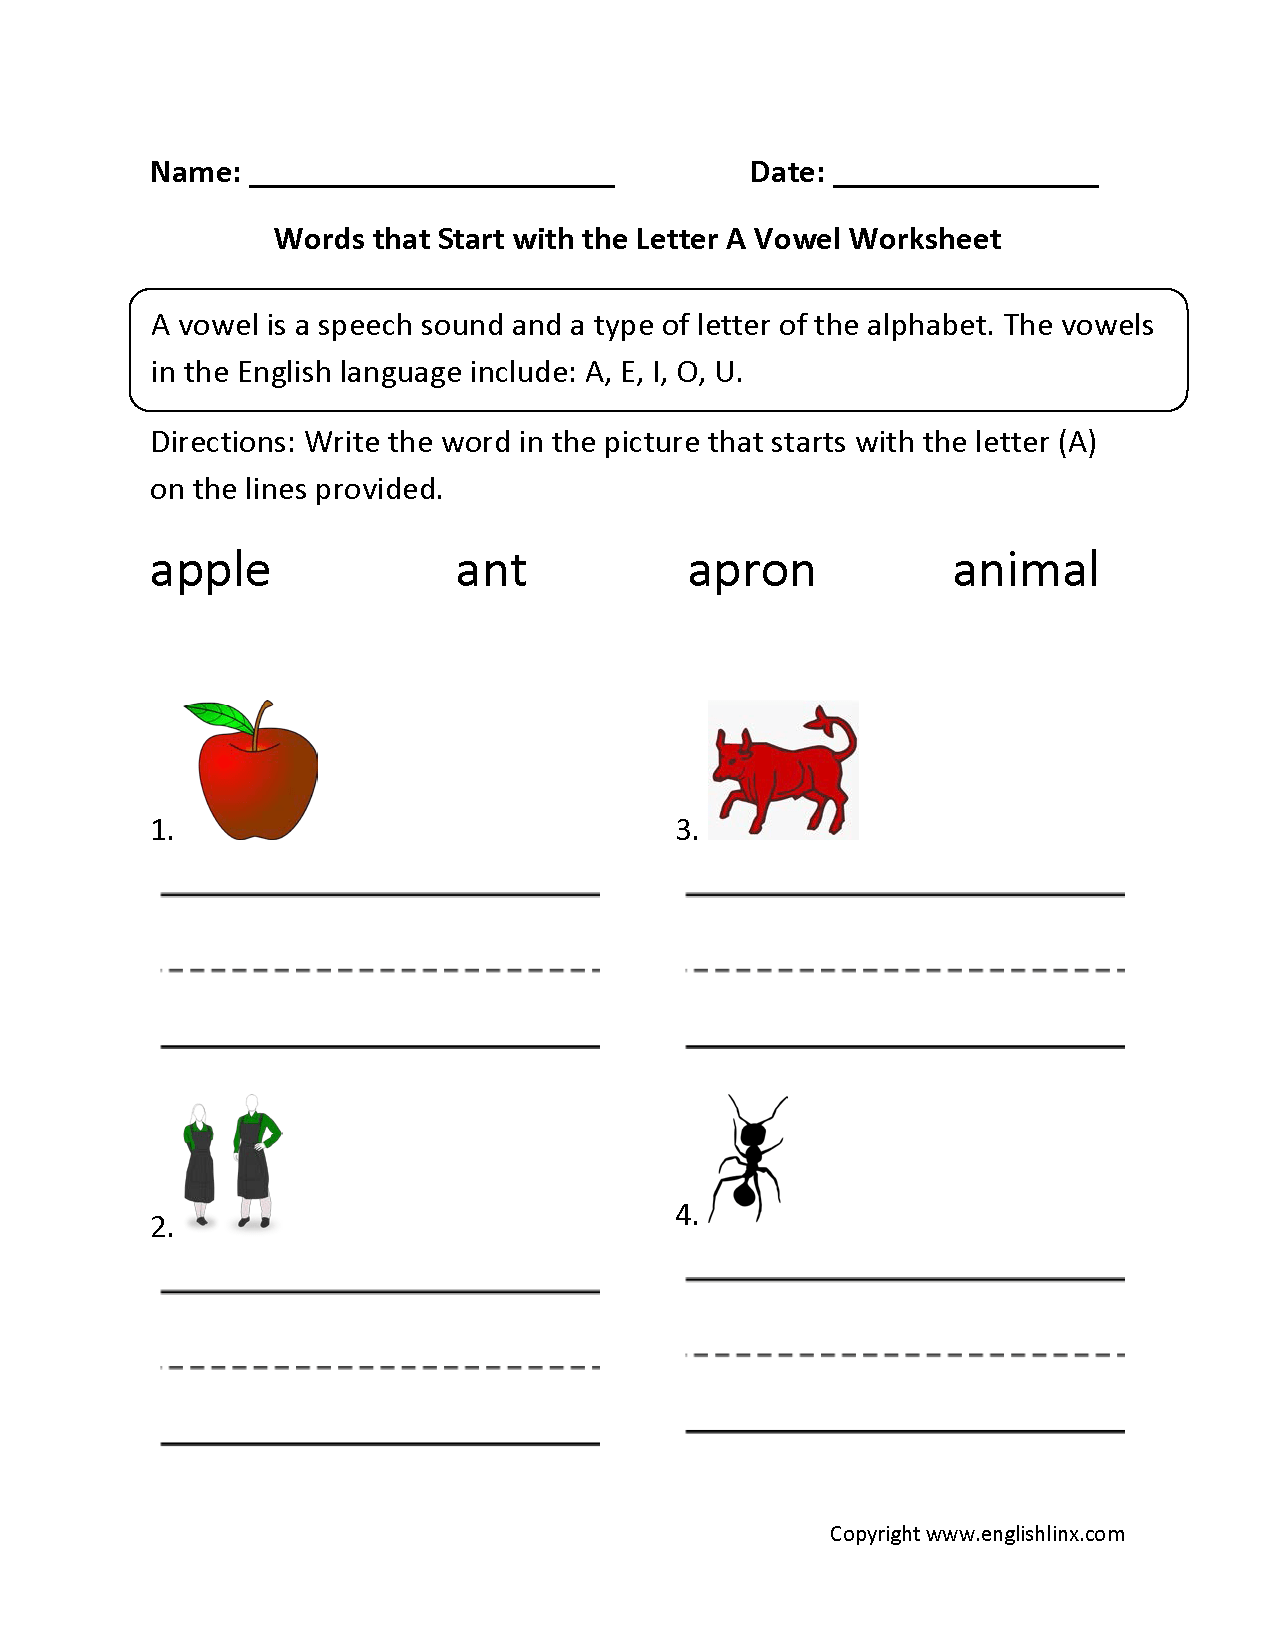 Words Start Letter A Vowel Worksheets